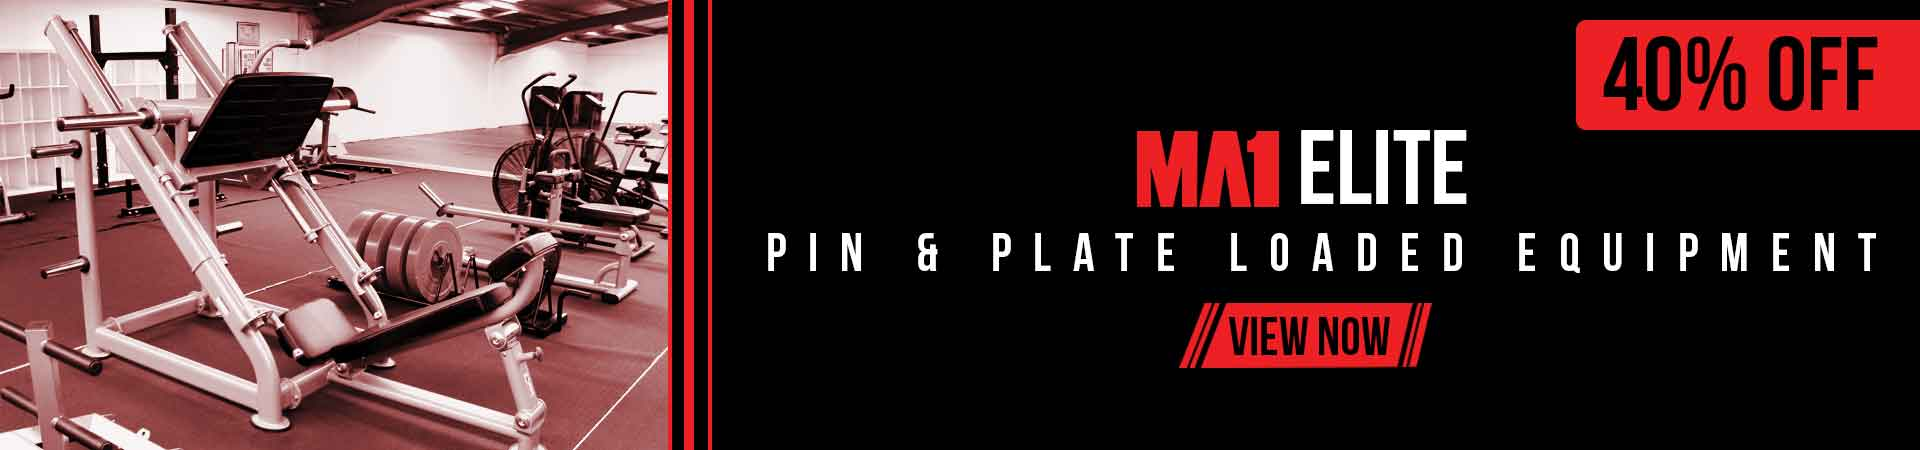 40% off Pin & Plate Loaded Equipment